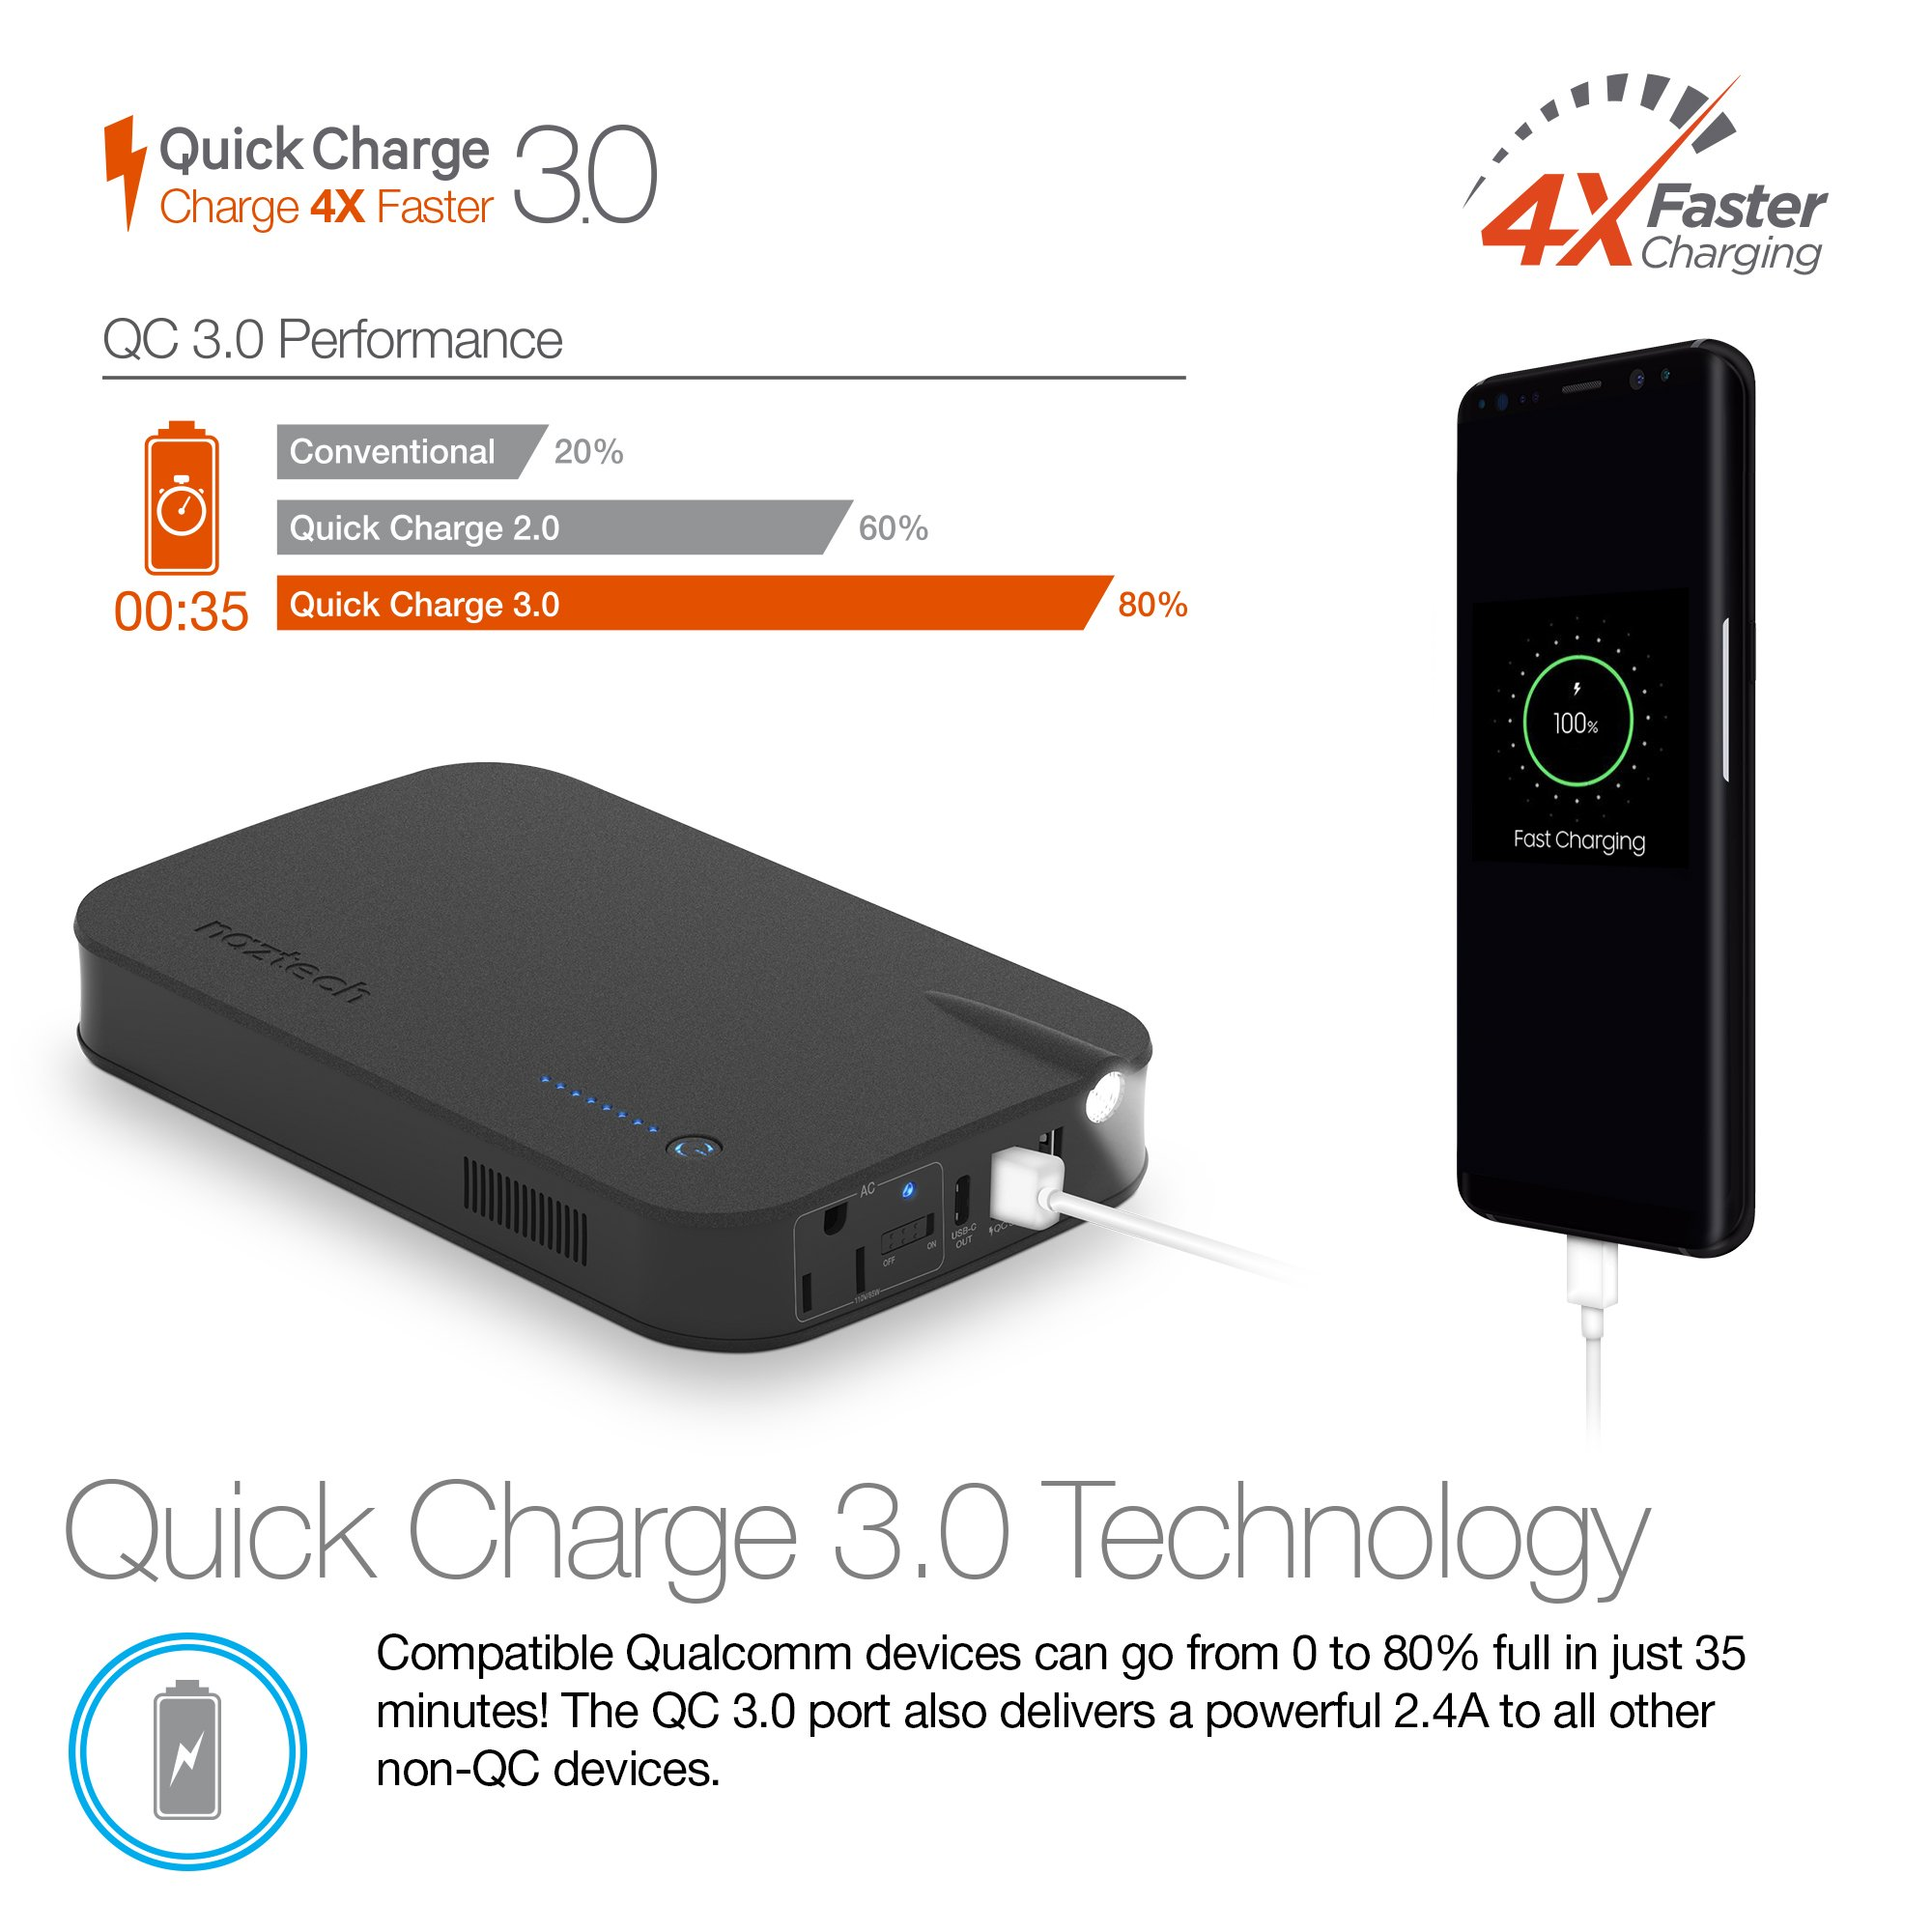 Naztech Volt AC Outlet 27000mAh QC 3.0 110V/85W Max USB-C Best Portable Power Bank, Universal External Battery Pack IntelliQ Technology Fast Chargers, Lightweight, Compact for Galaxy S8 MacBook by Naztech (Image #3)